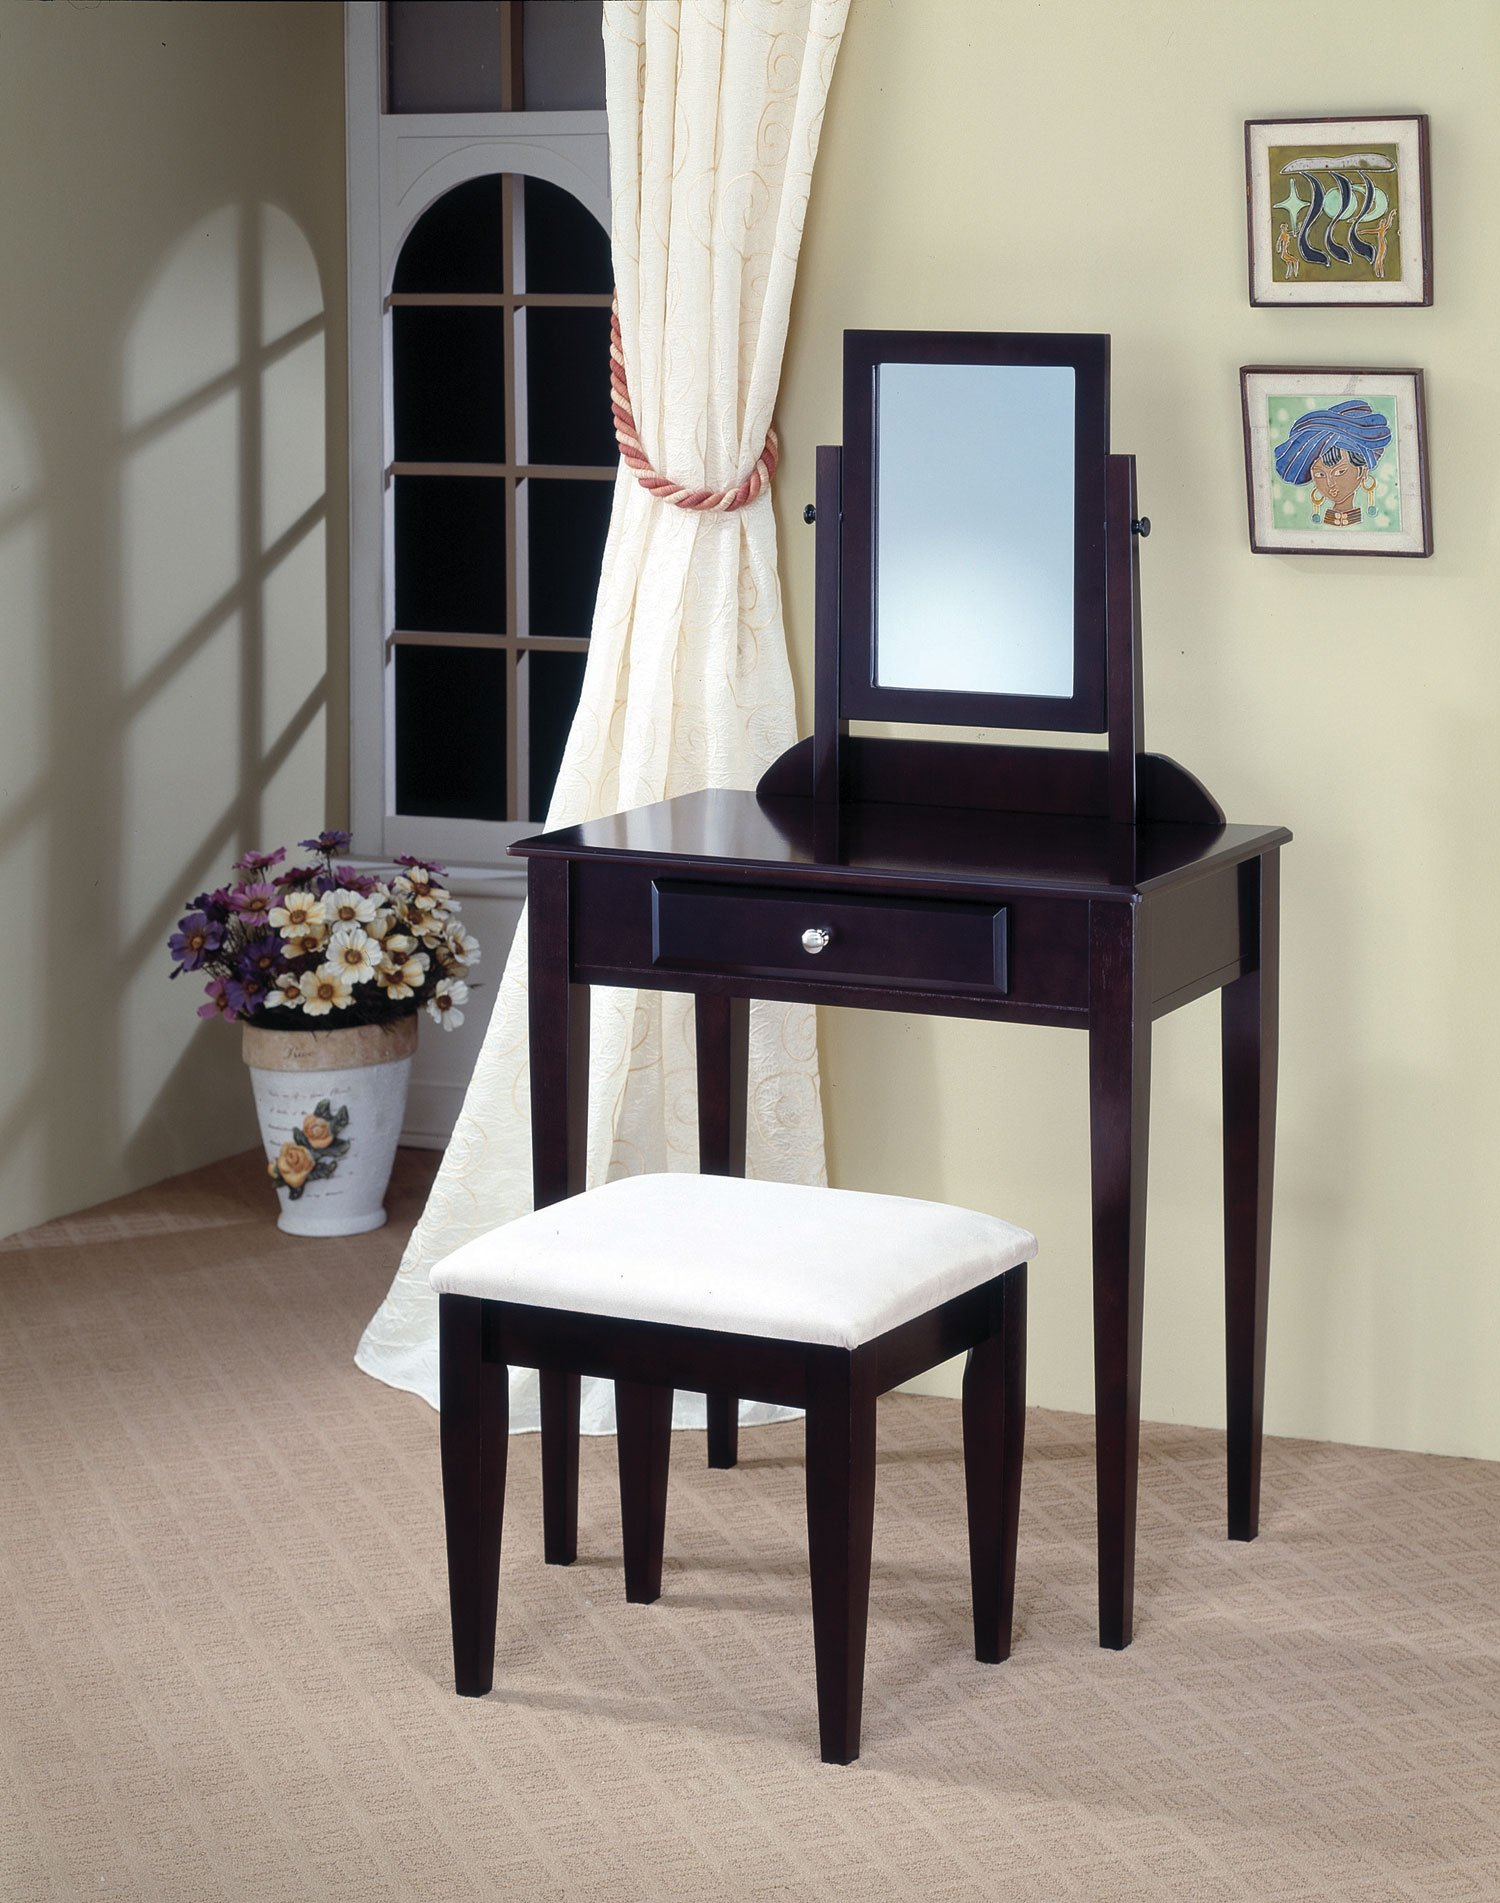 Vanities Contemporary Vanity and Stool with Fabric Seat by Coaster